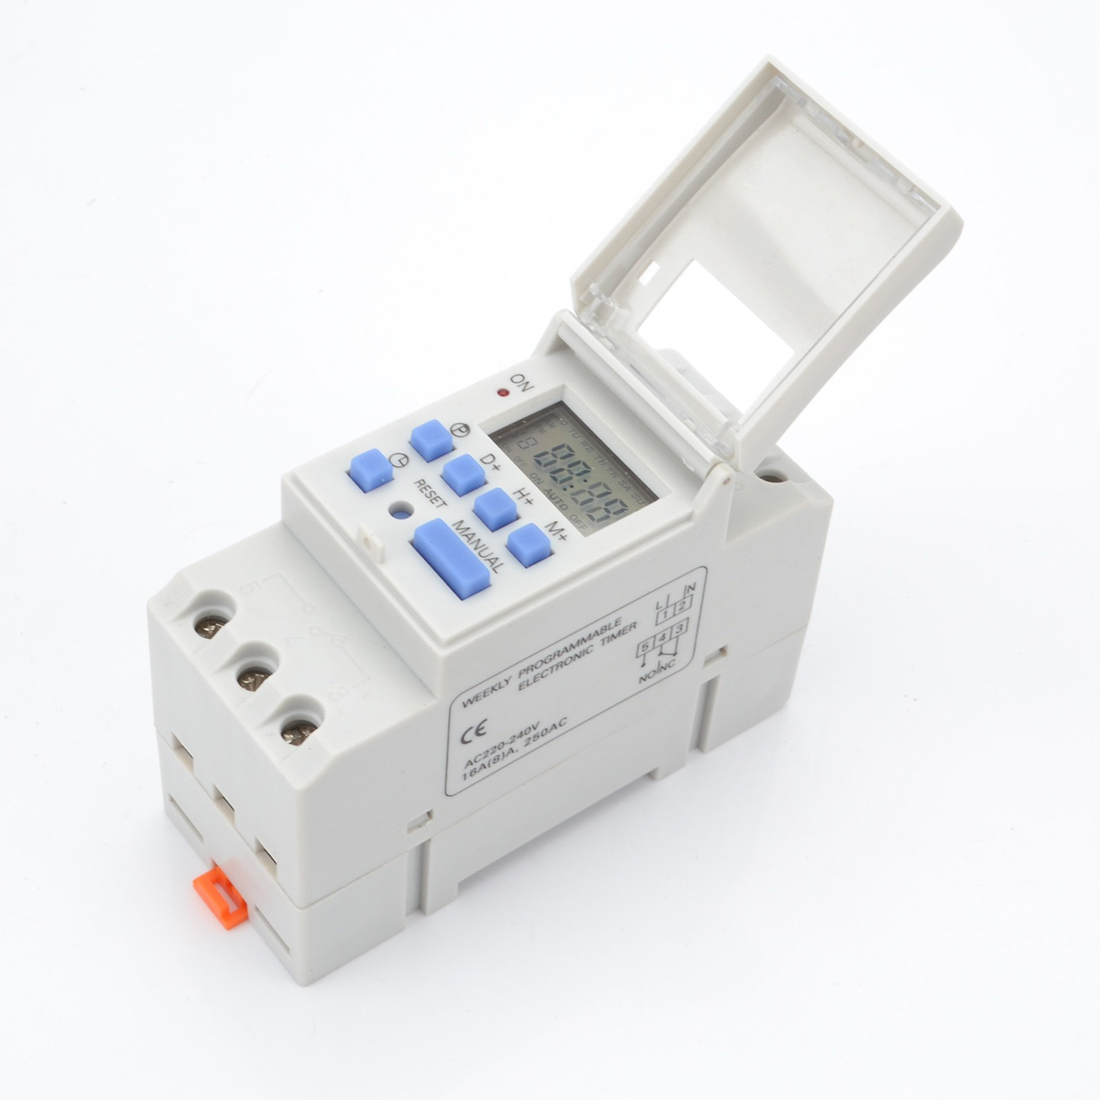 New 12V DC Programmable LCD Digital Timer Control 16A 8 Cycles Per Day Max